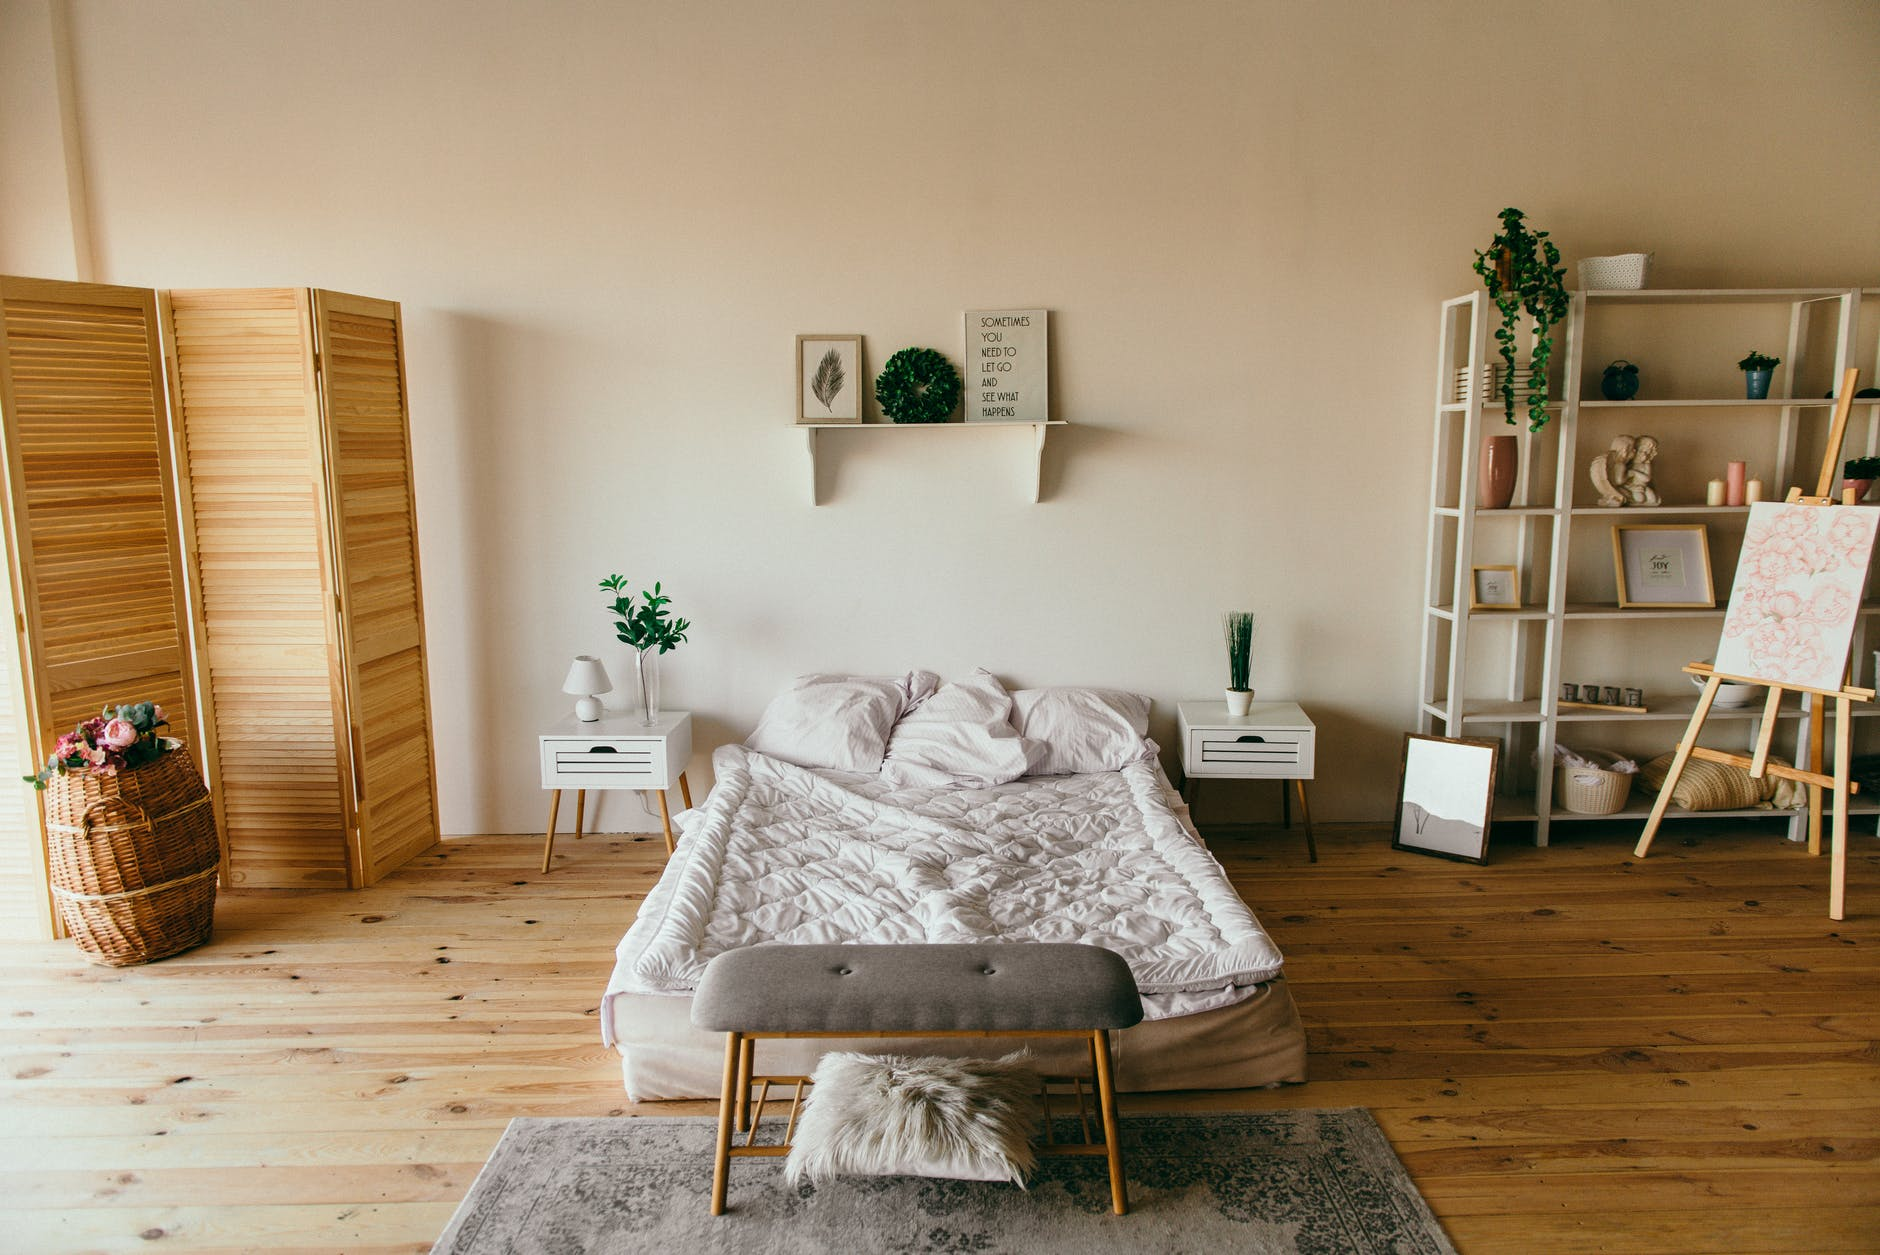 10 Trendy Interior Paint Colors To Make Your Bedroom Look Bigger